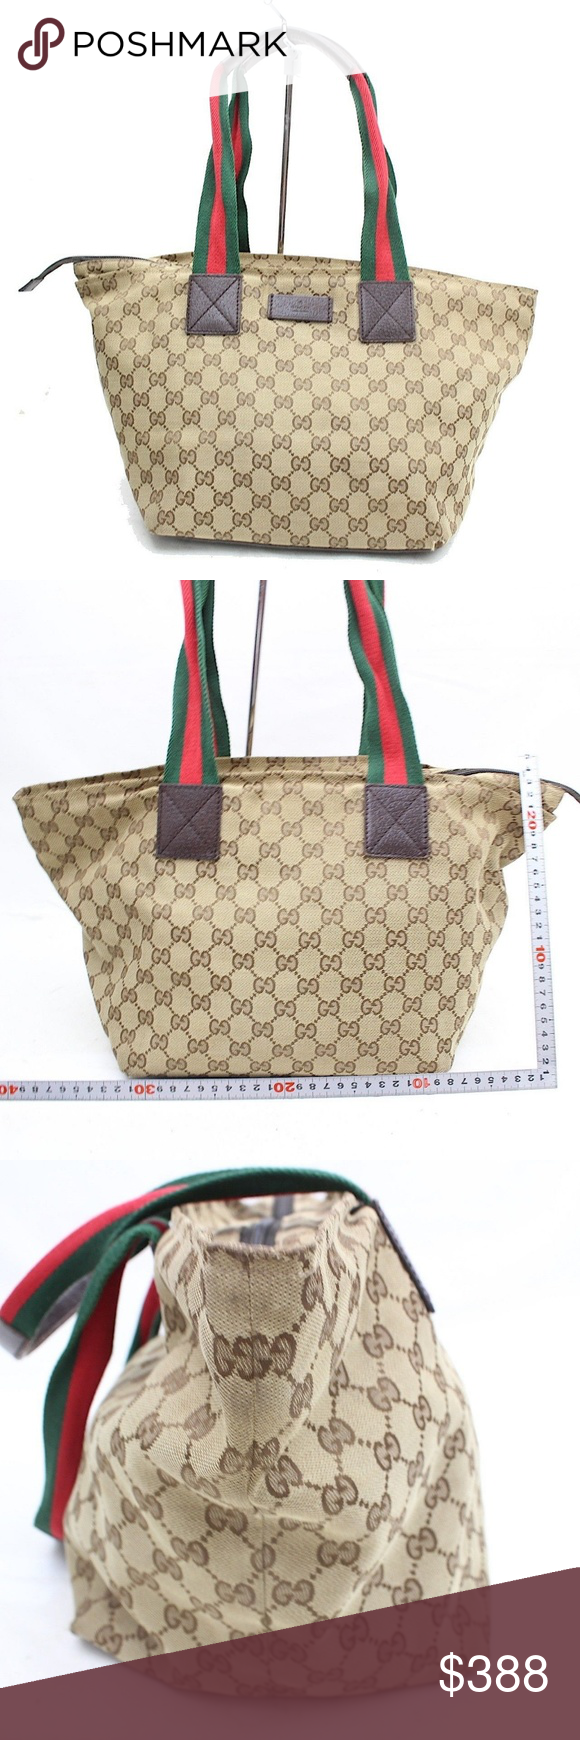 131230 auth gucci gg browns canvas bag 256g121 size: w17'' x h9'' x